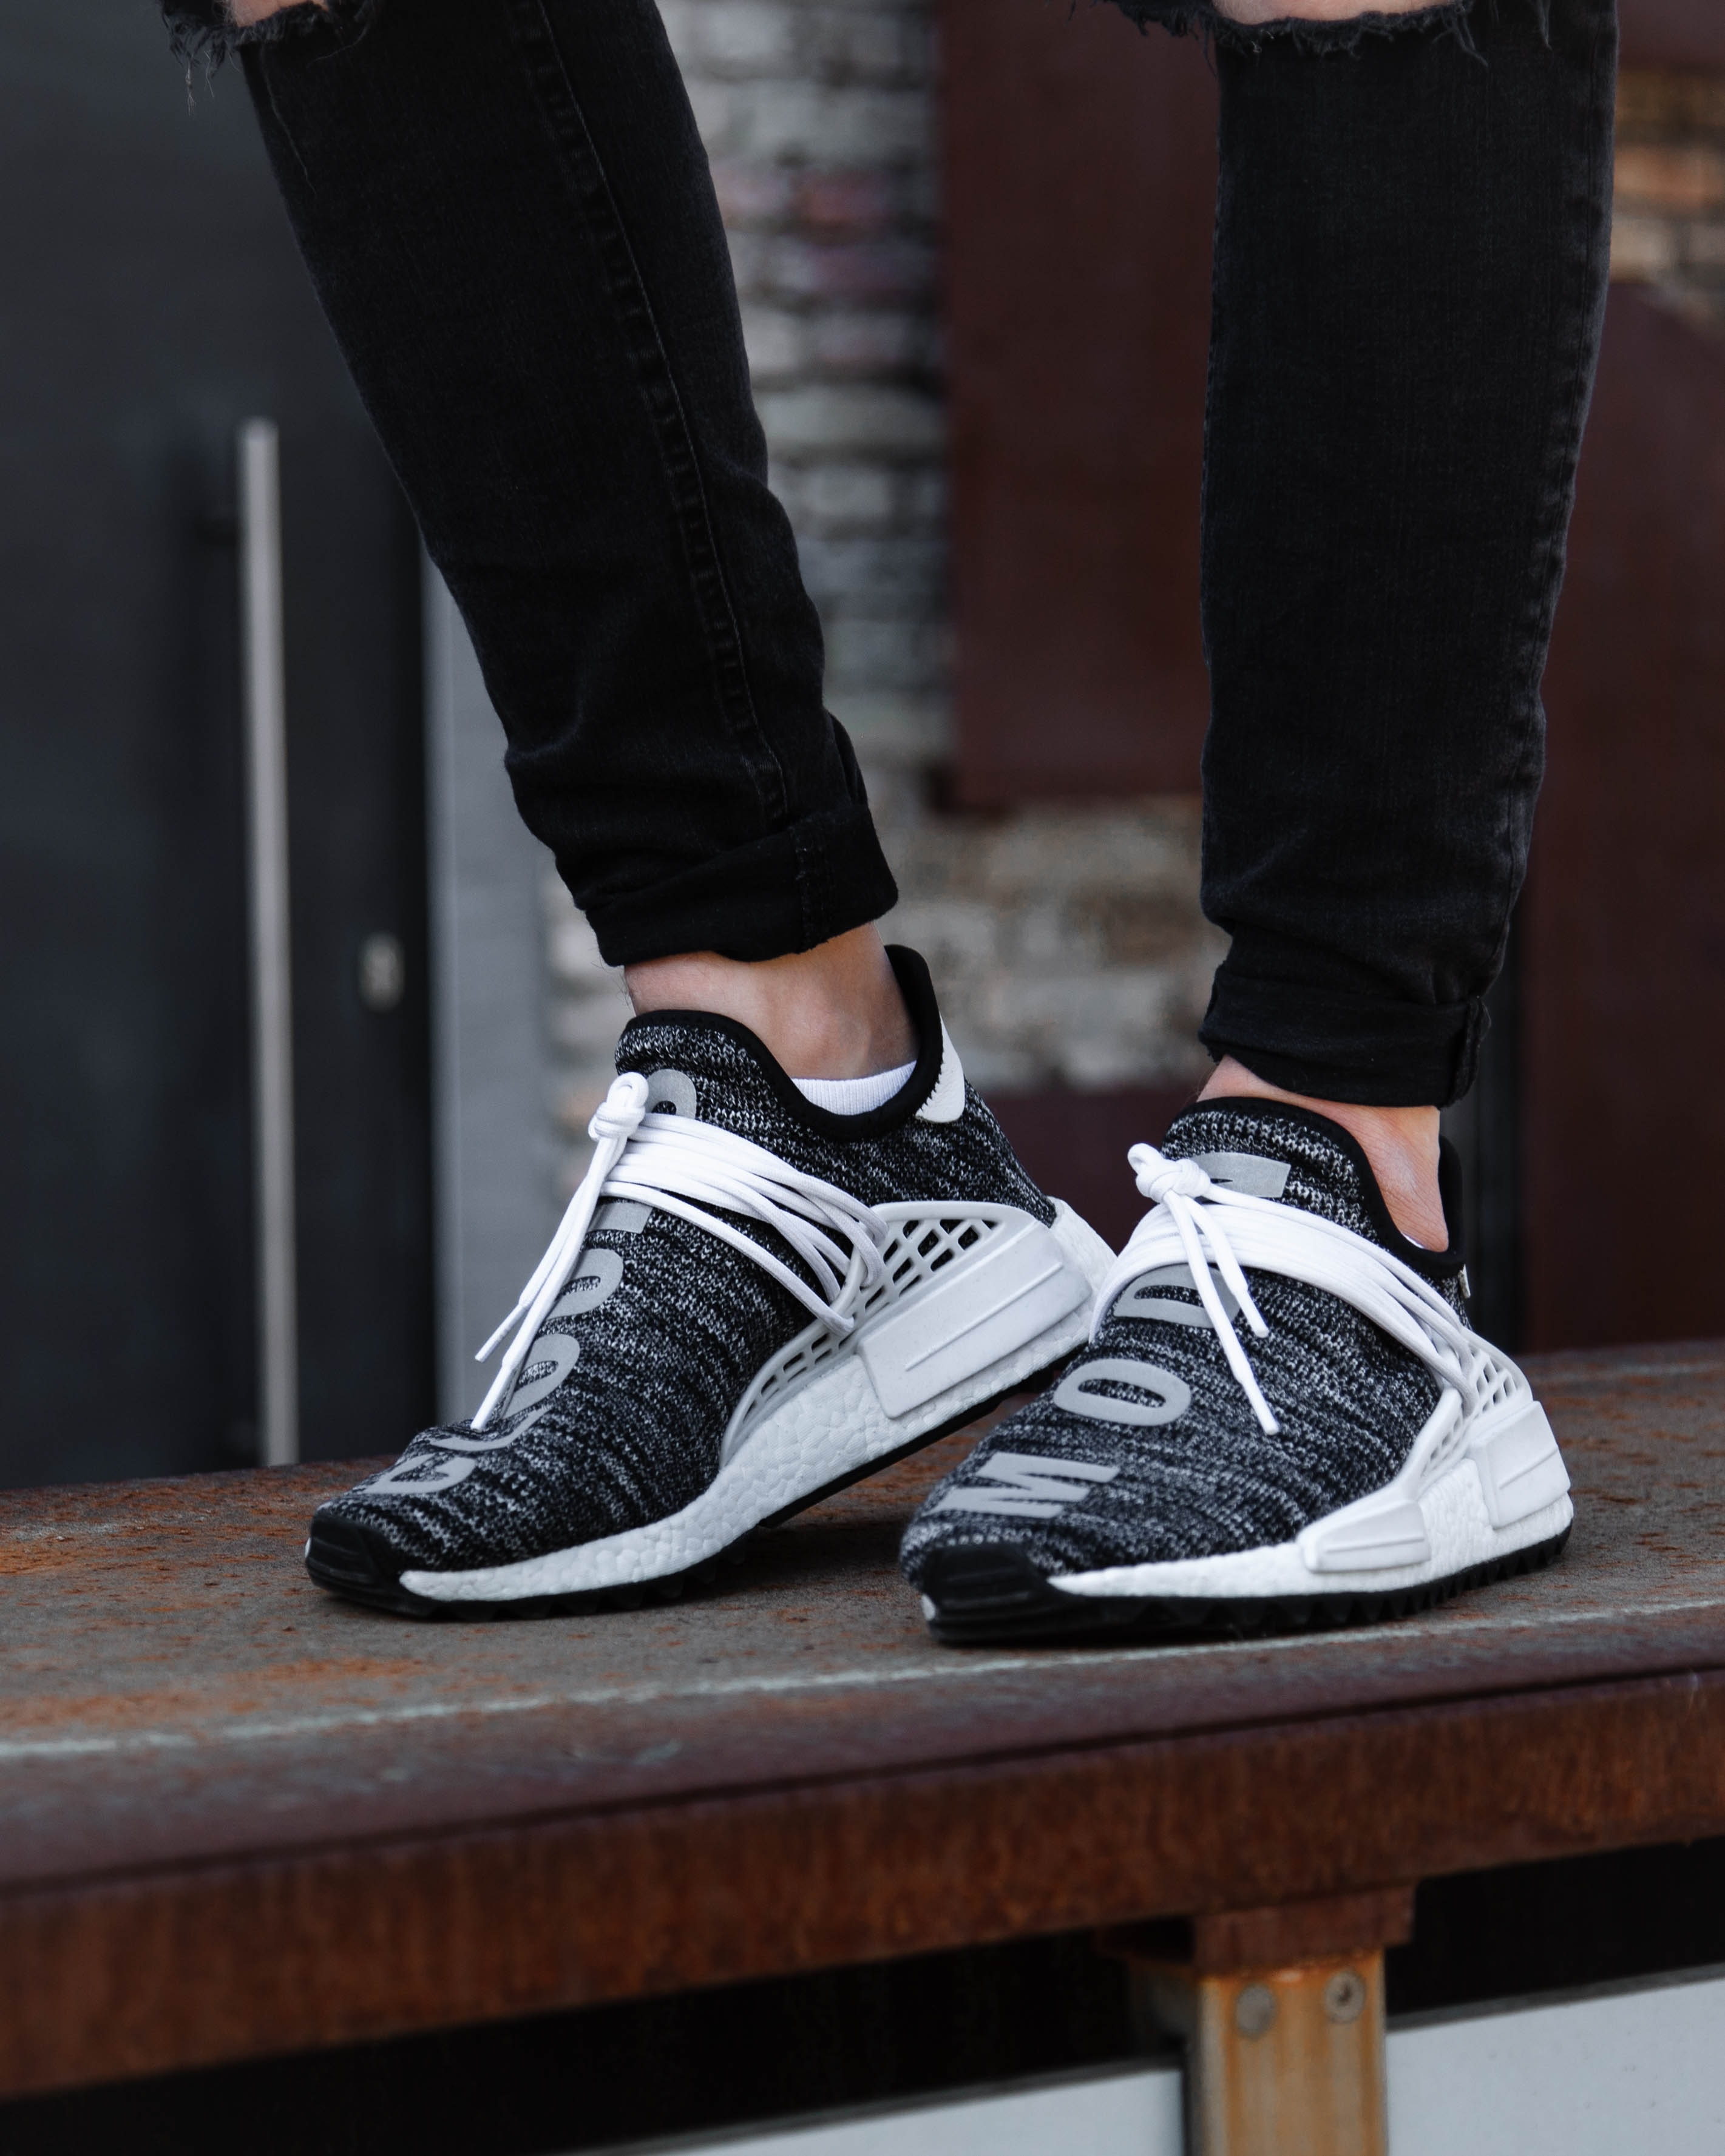 person wearing running shoes